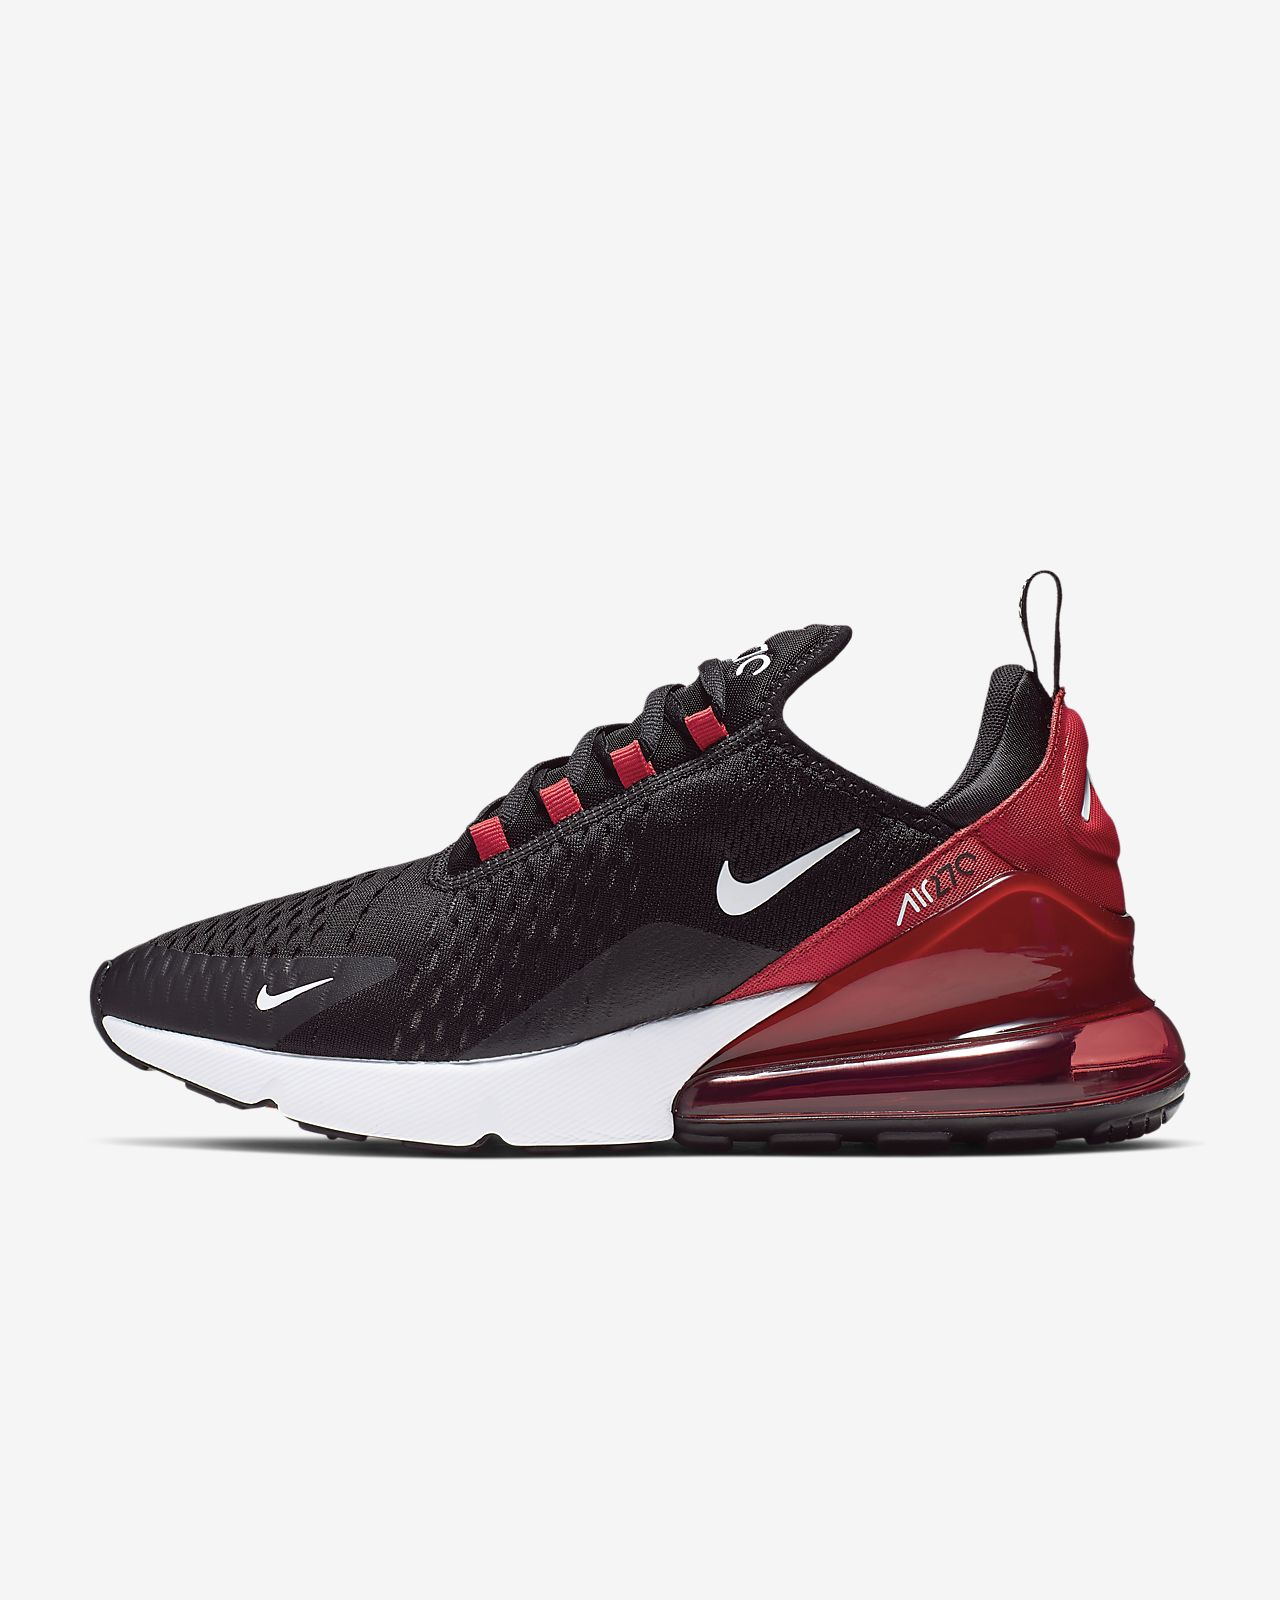 4918f7ee8d6e Nike Air Max 270 Men s Shoe. Nike.com GB